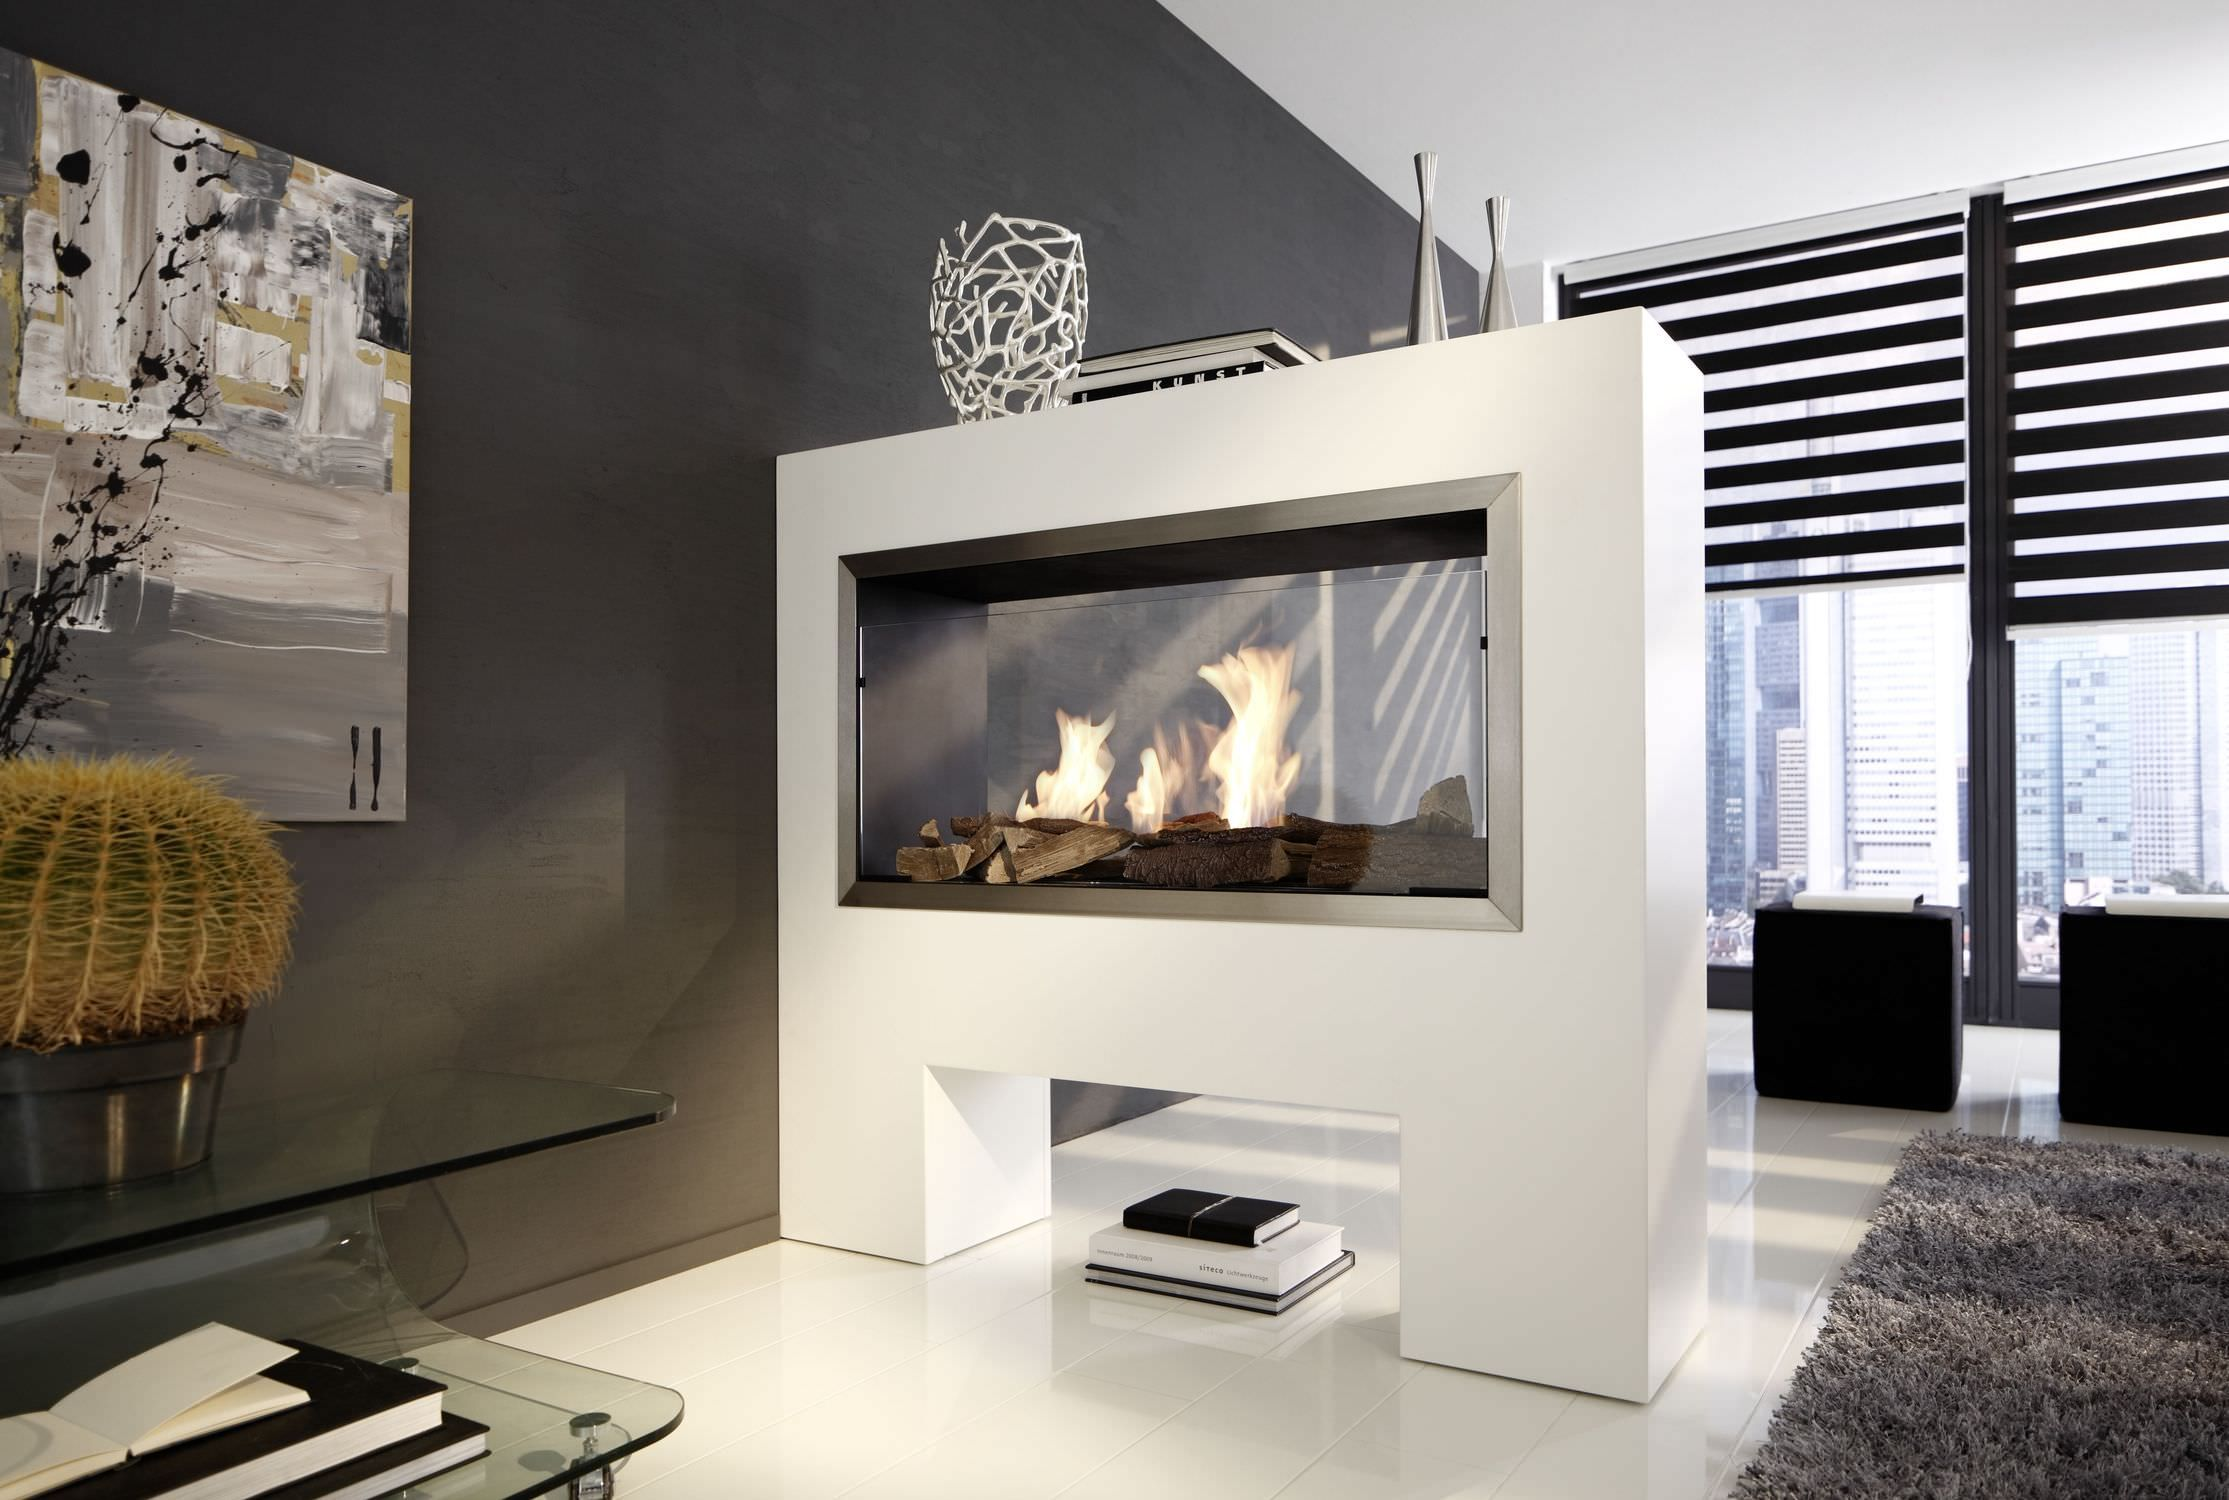 2-Sided Electric Fireplace Insert | Fireplace | Pinterest ...